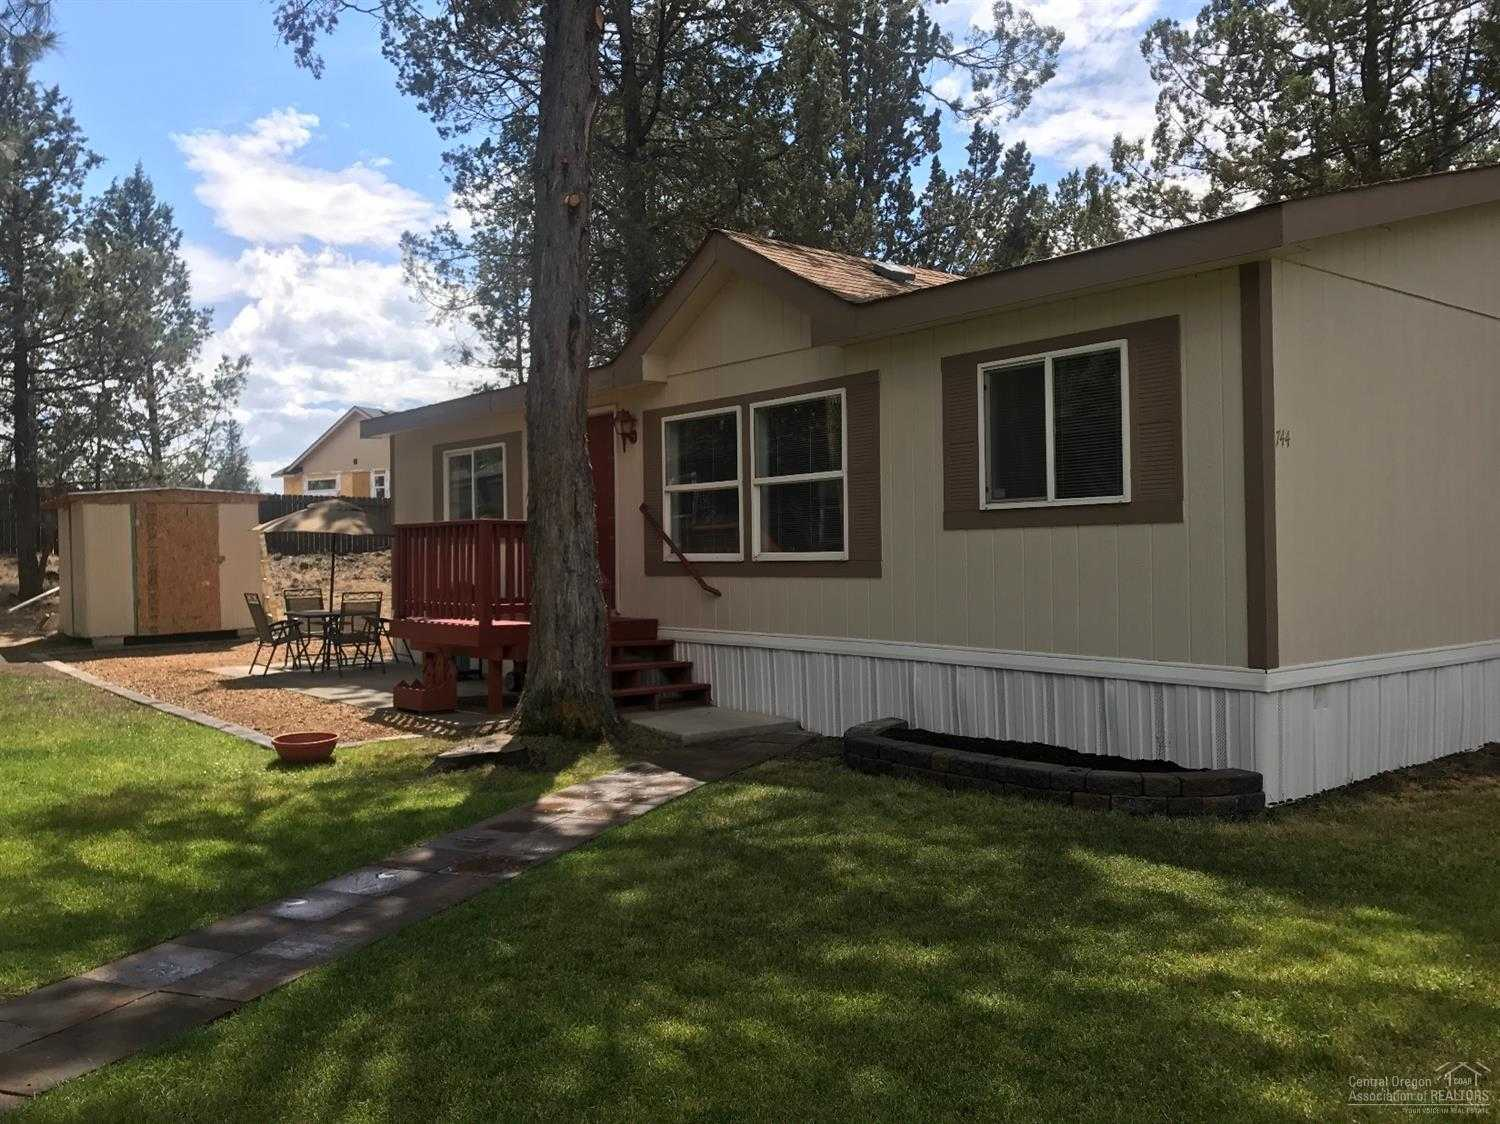 $82,000 - 3Br/2Ba -  for Sale in Bend